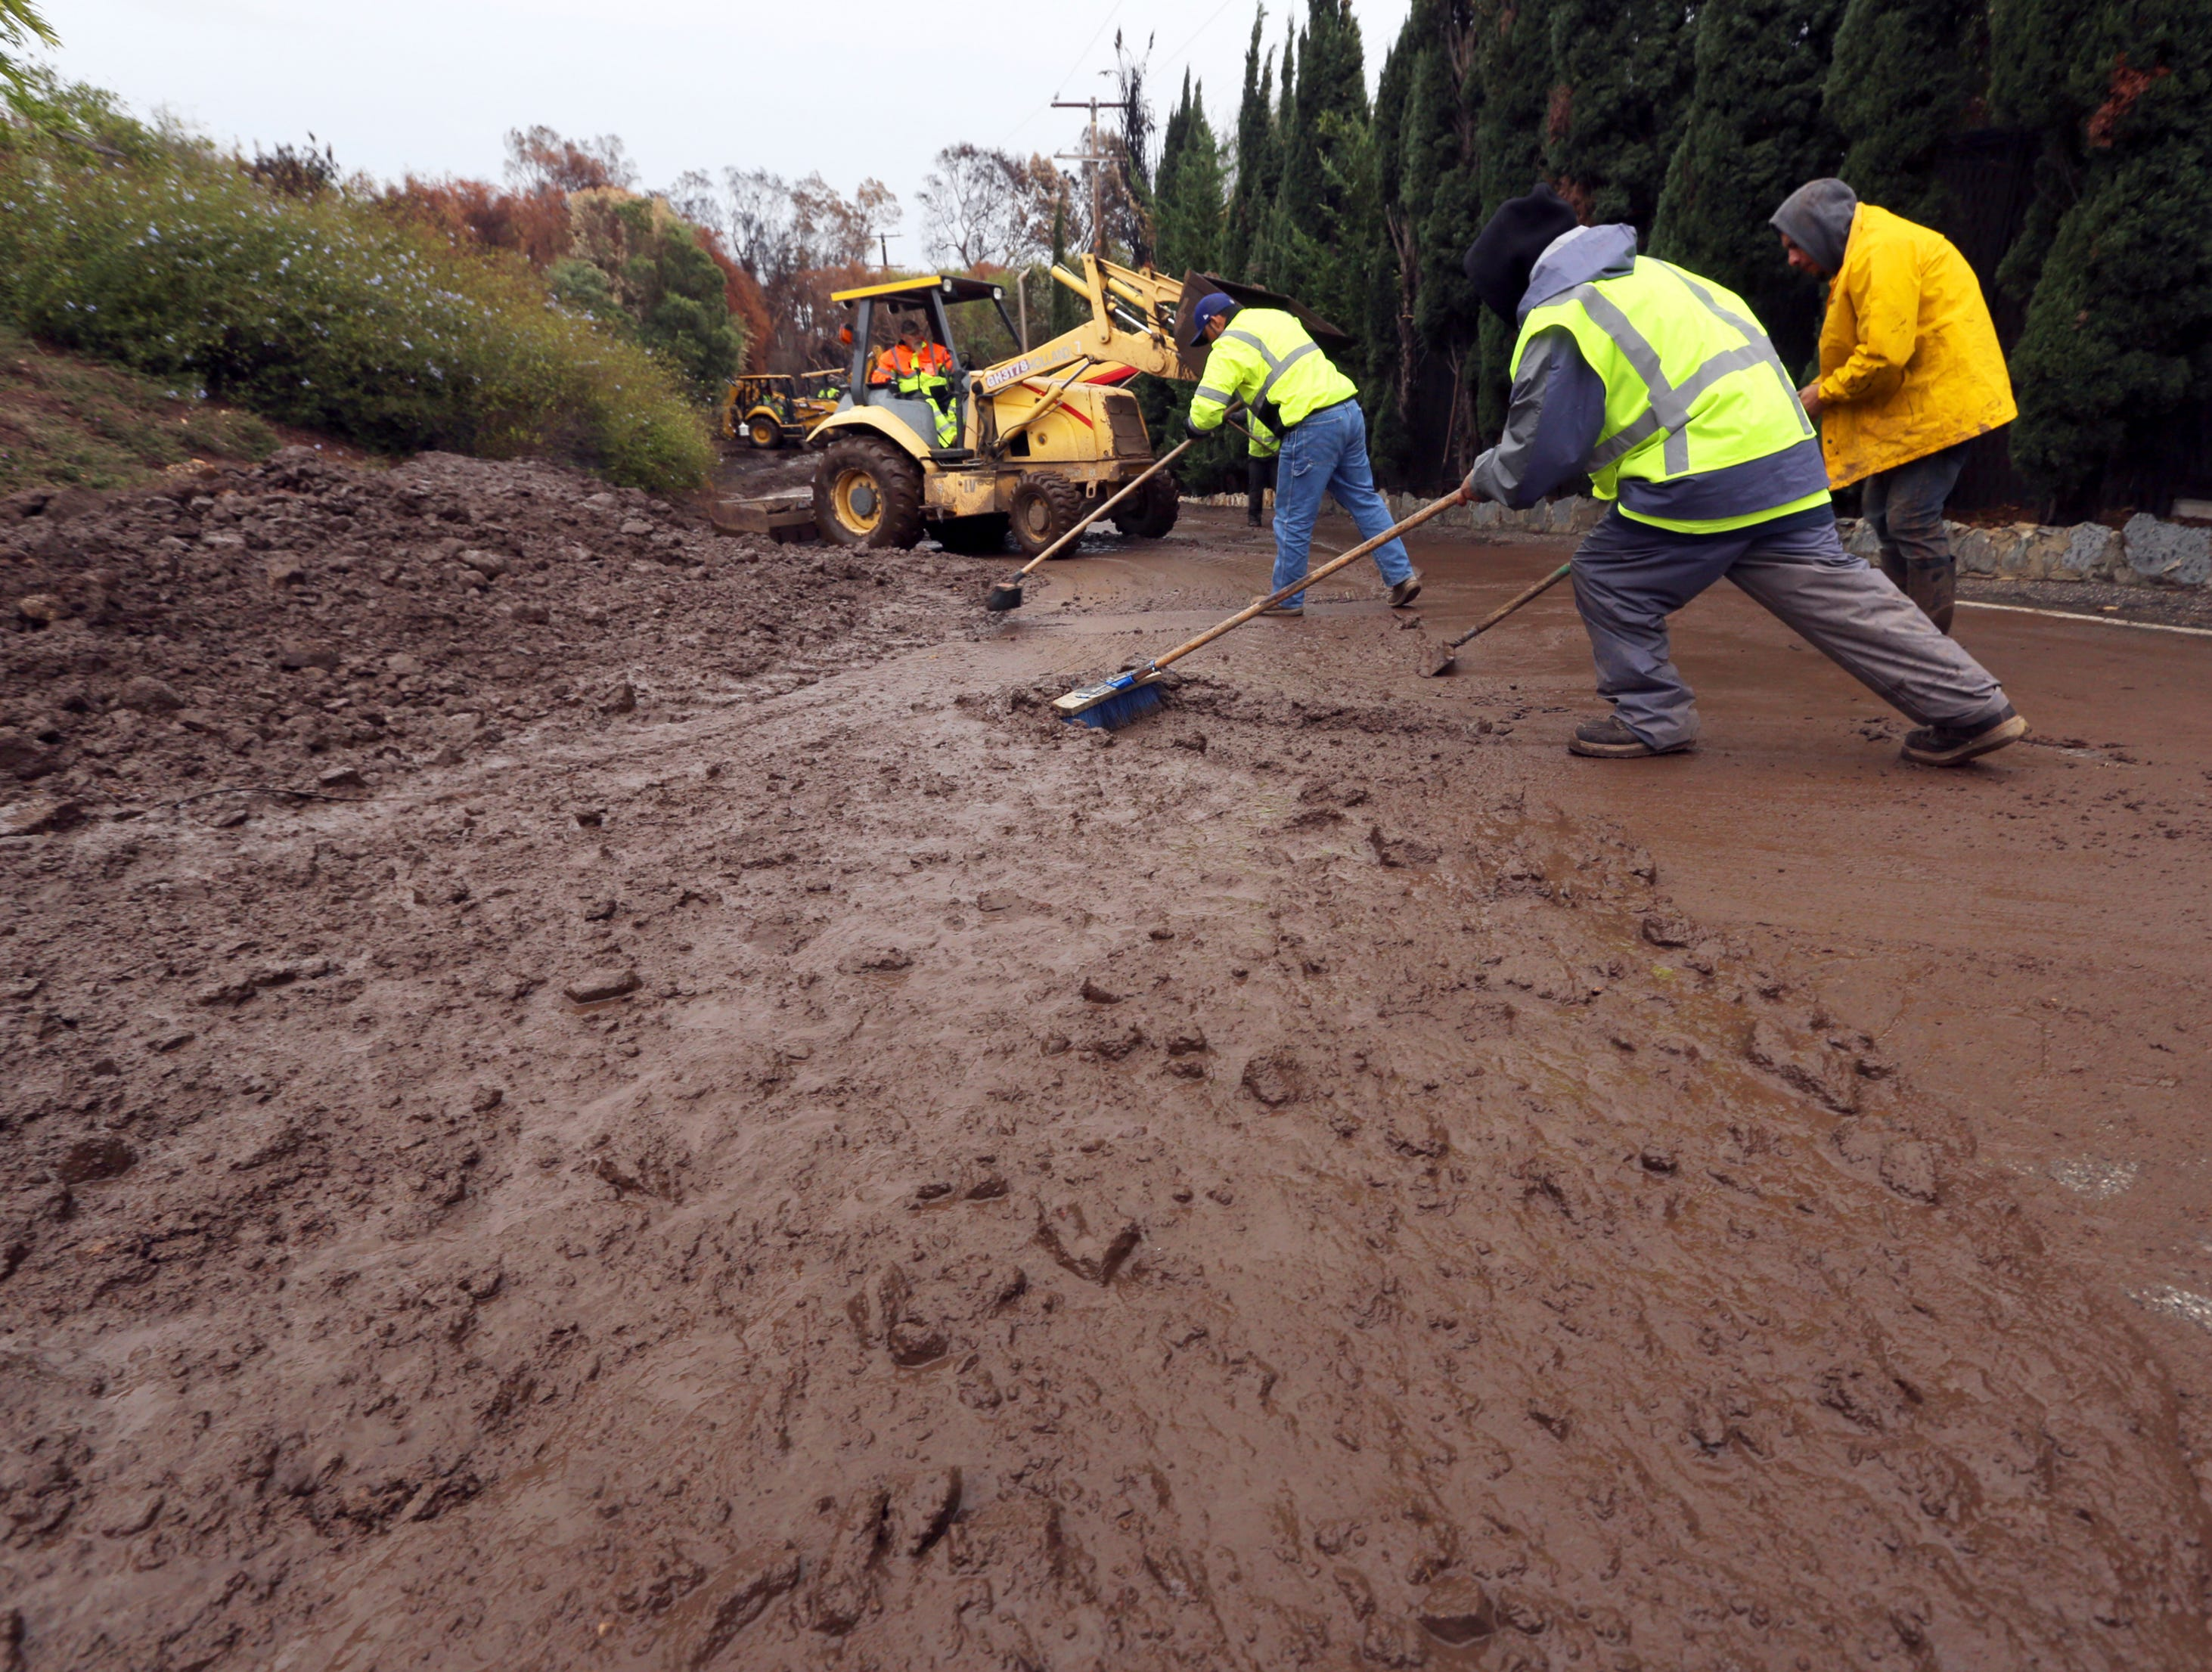 A Malibu Public Works crew clears a culvert on that overflowed with mud and debris on Cuthbert Road in an area burned by the Woolsey fire in Malibu, Calif. Thursday, Dec. 6, 2018.